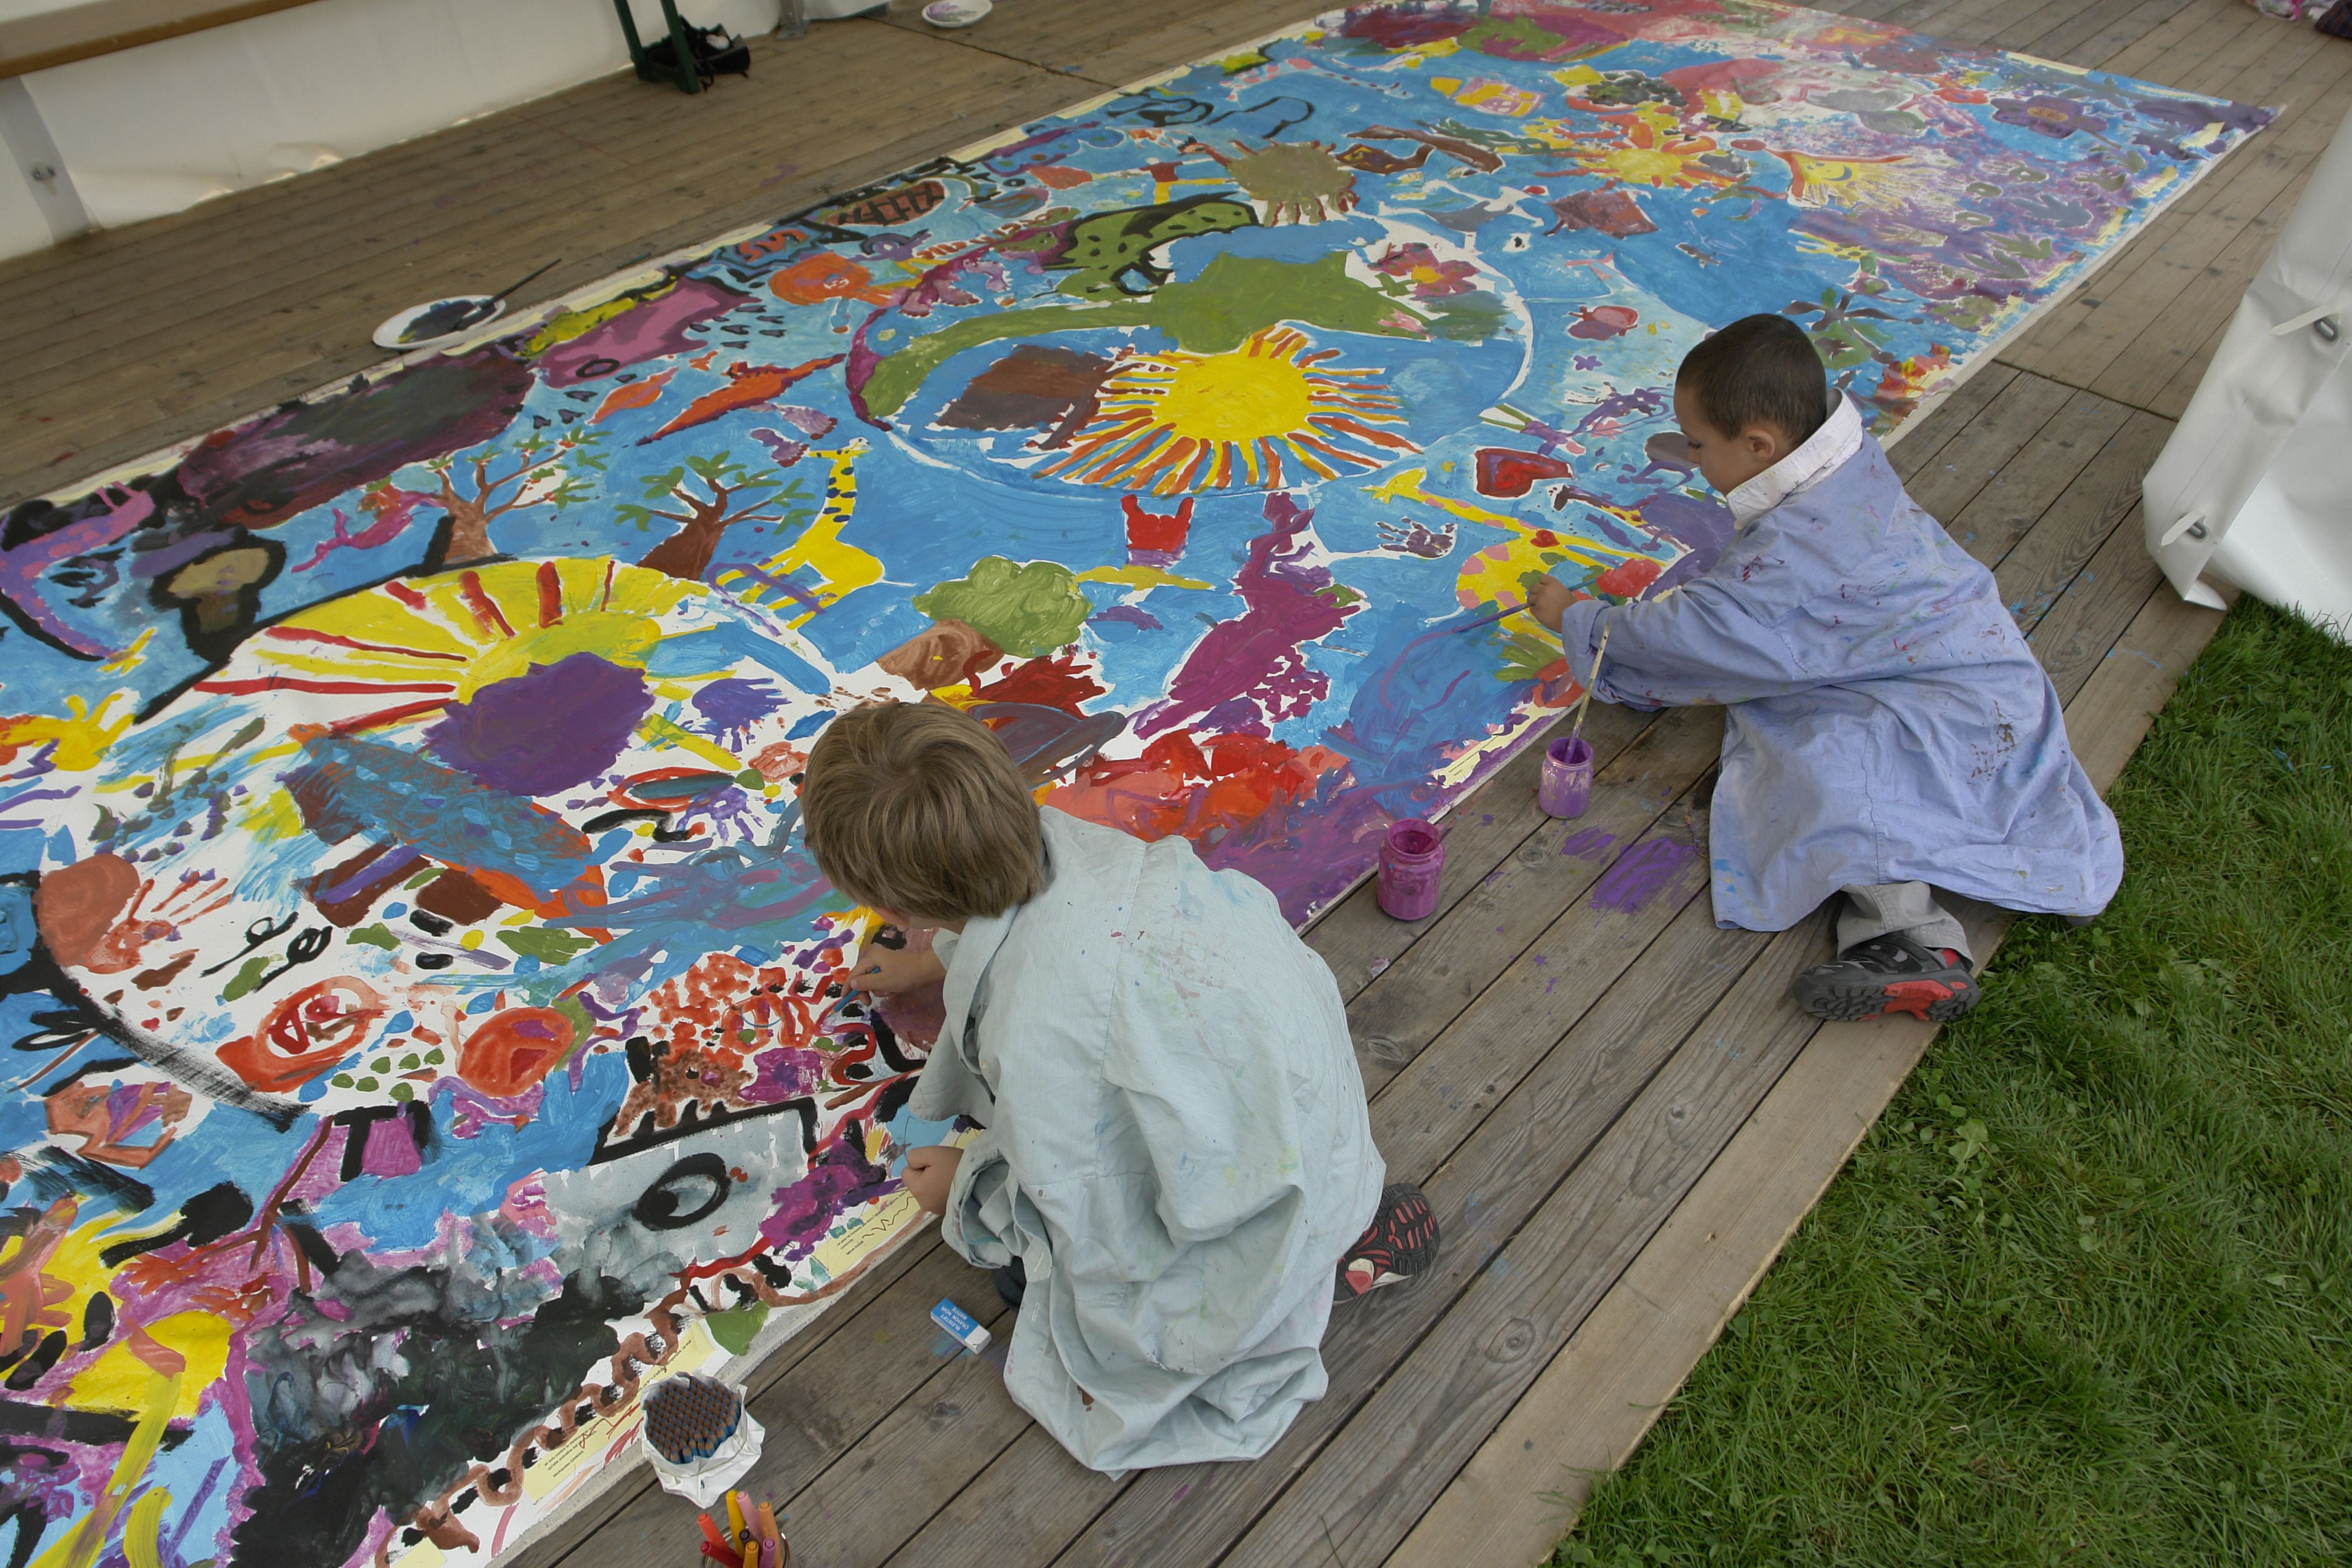 Best ideas about Art With Kids . Save or Pin Promoting Peace Through Art Now.